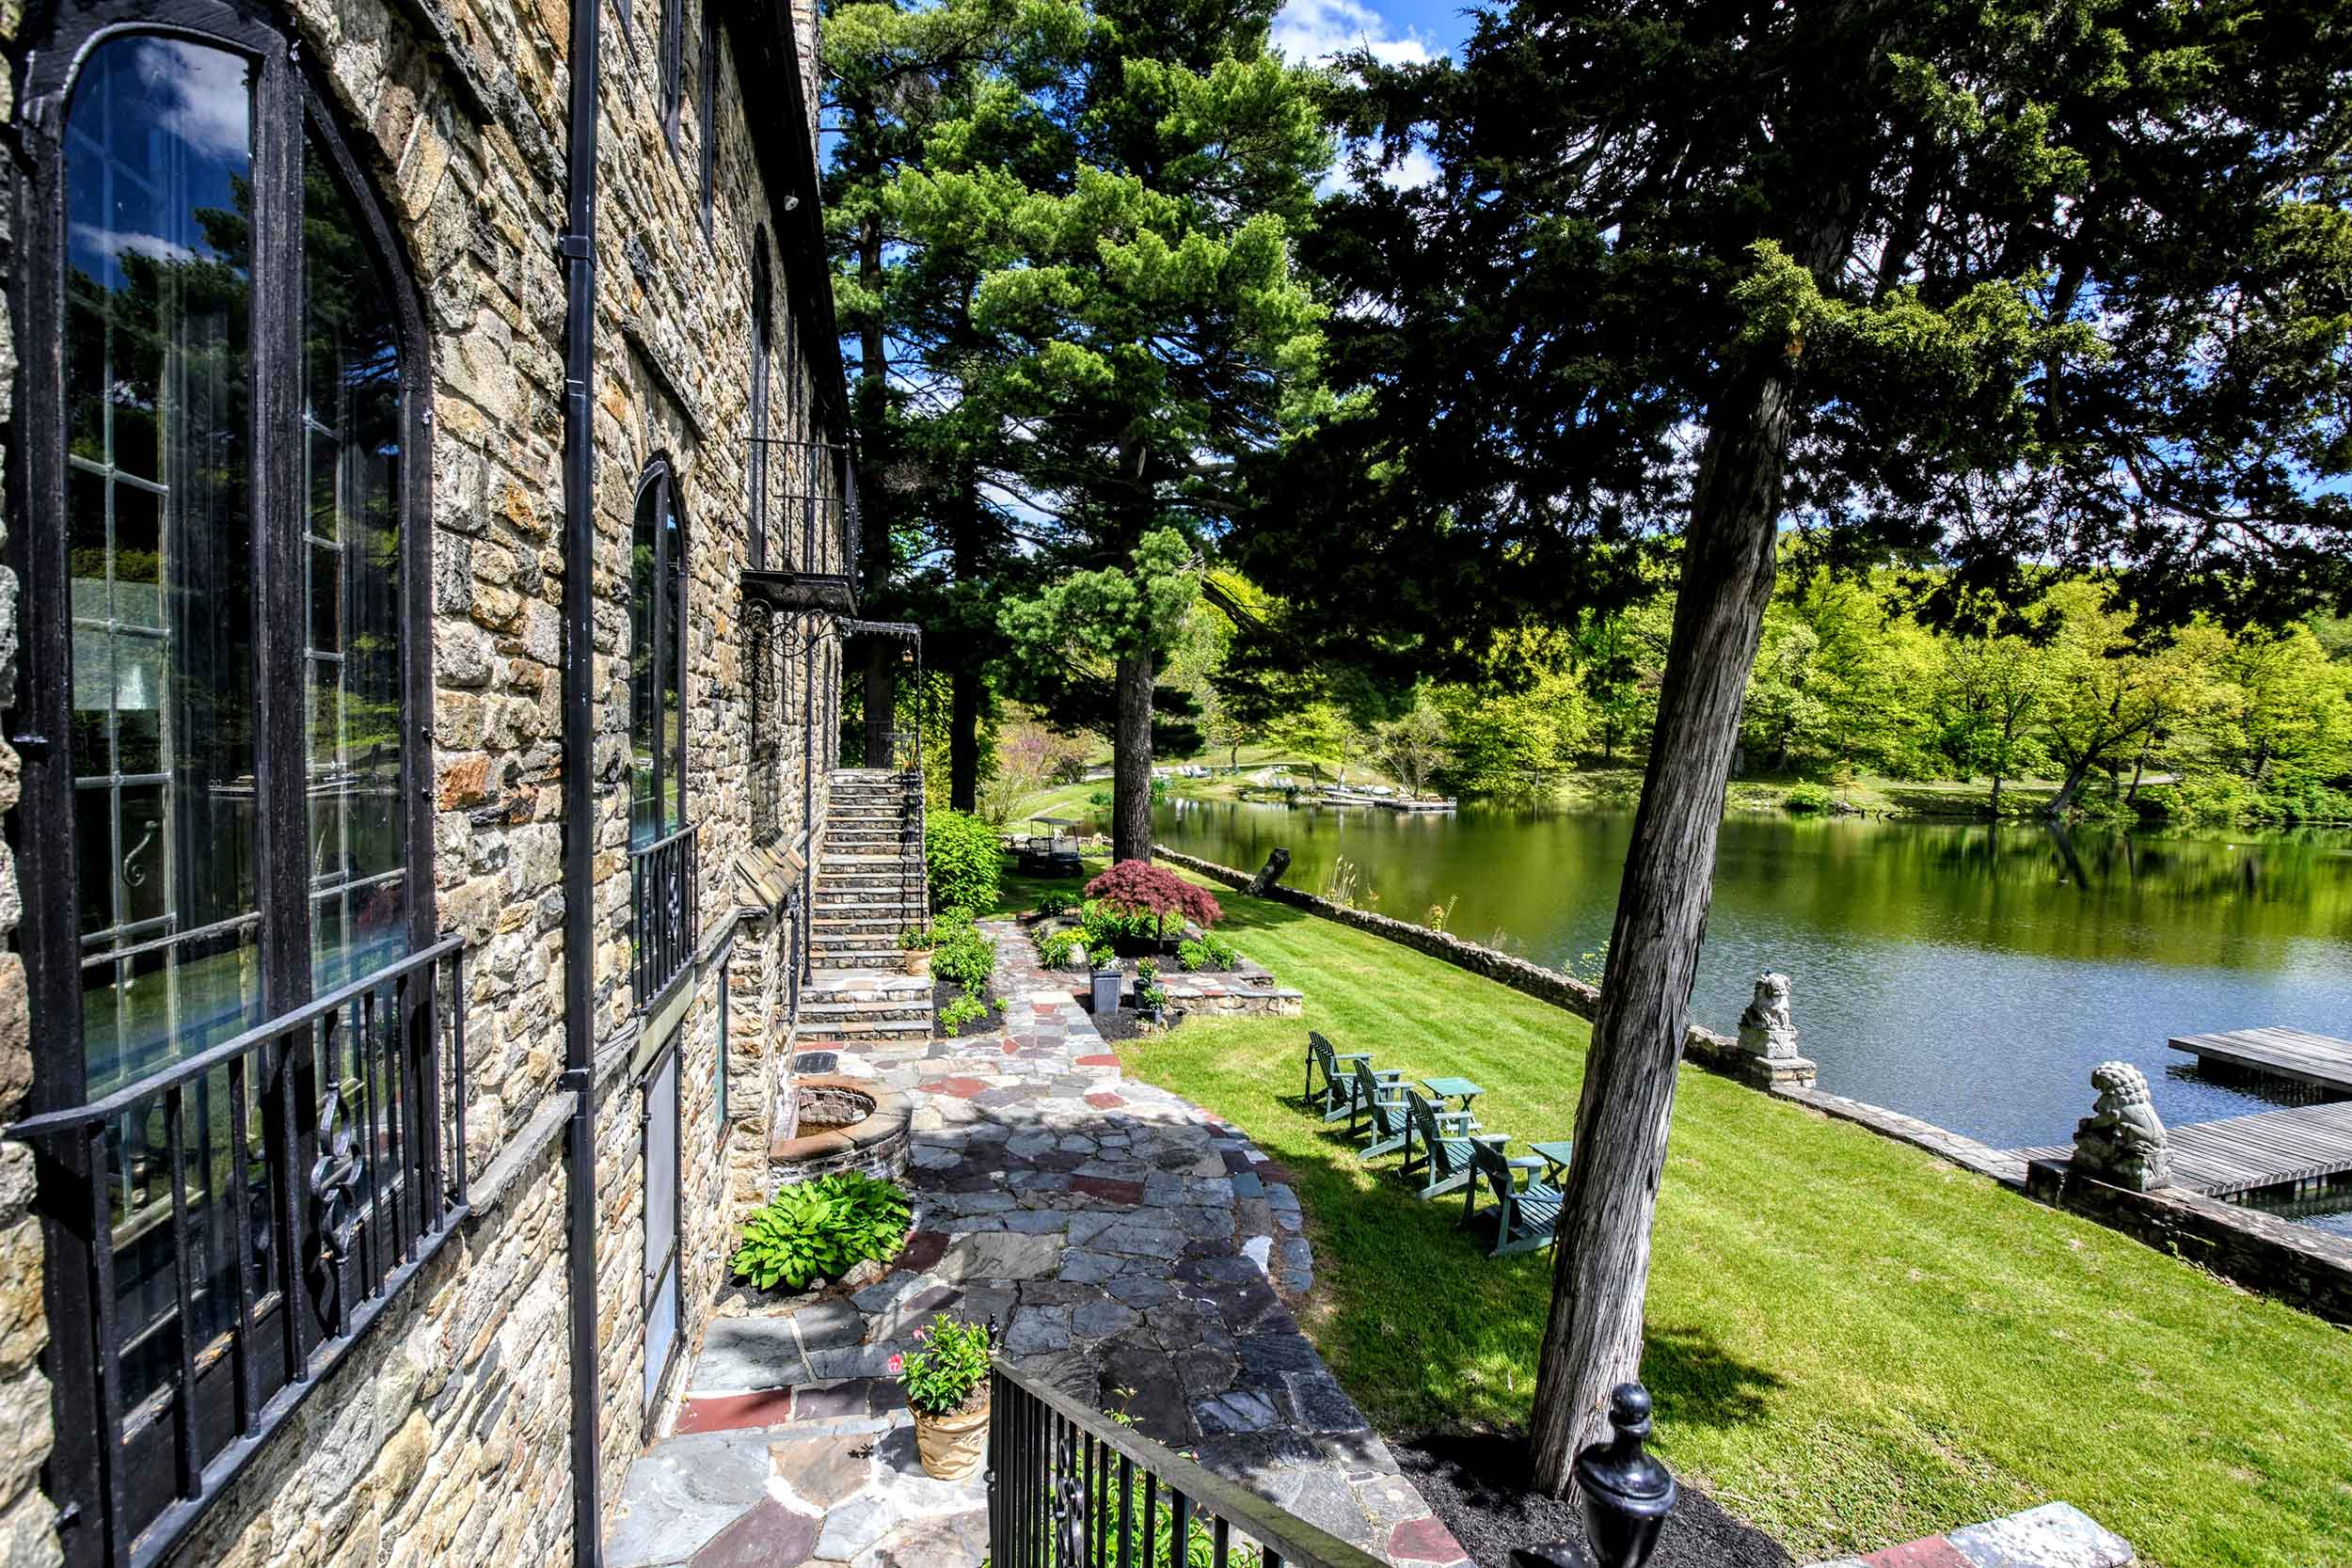 The centerpiece of this historic estate is a mansion built from locally sourced Fieldstone and native woods.